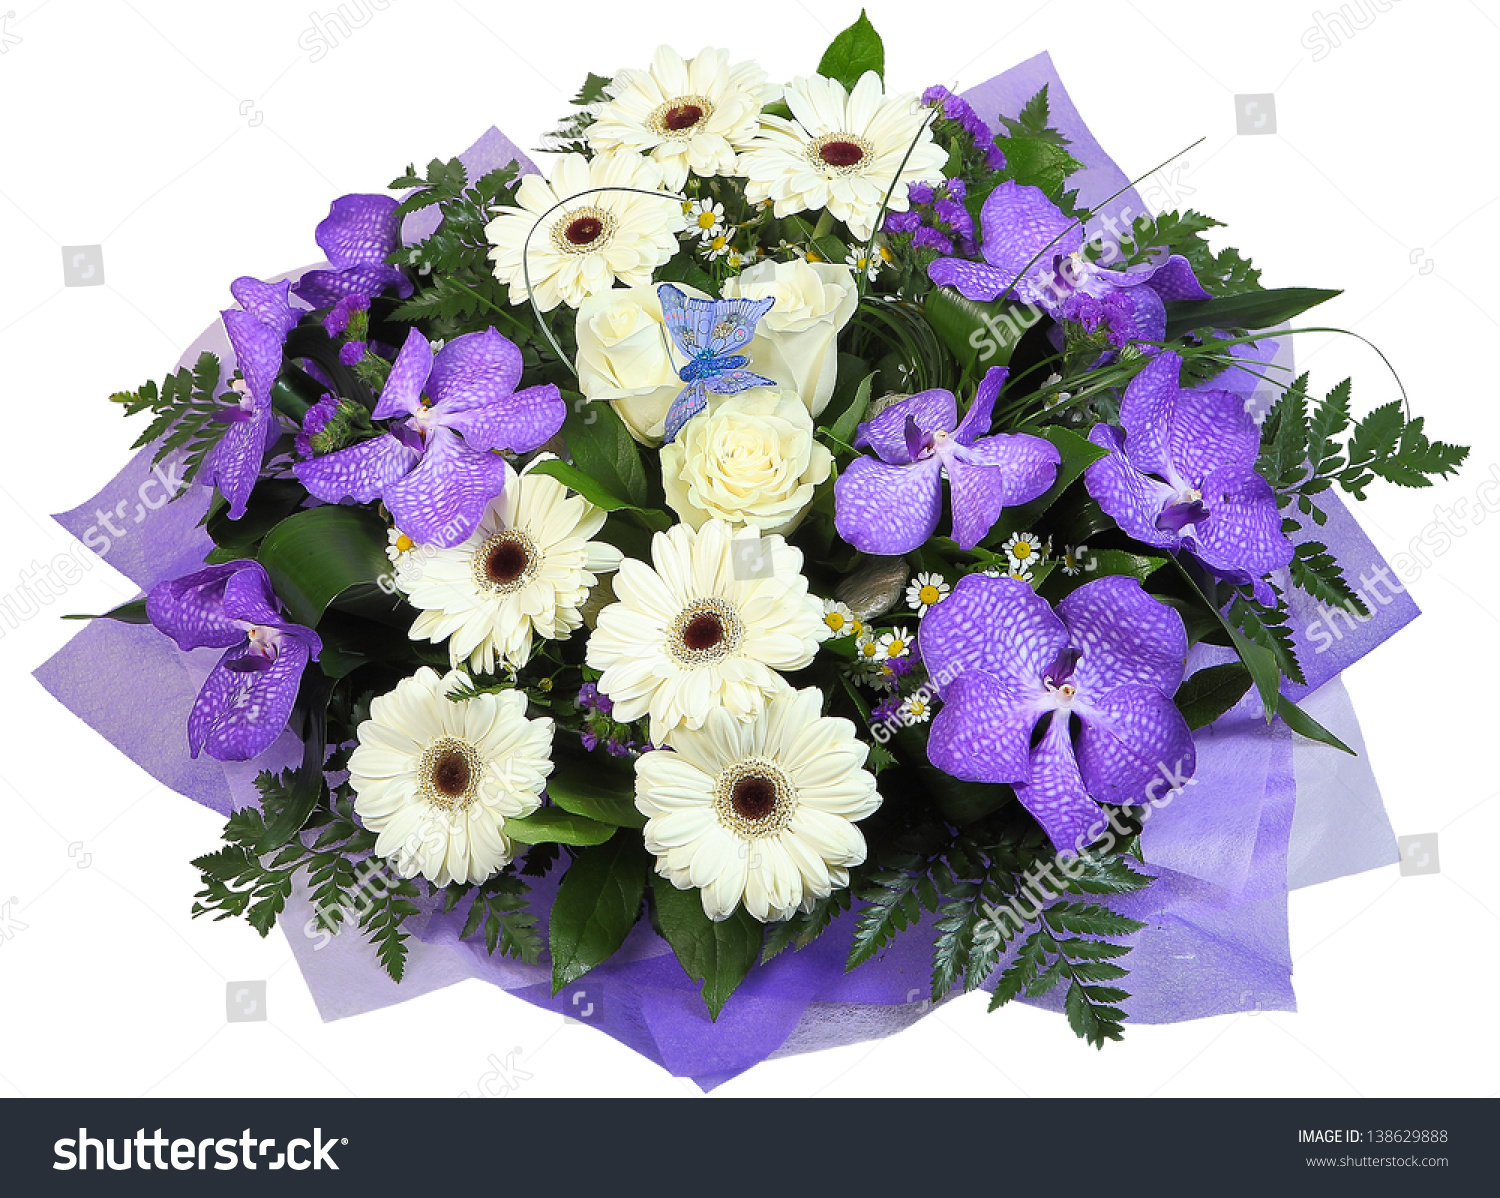 Bouquet flowers violet orchid white rose stock photo download now a bouquet of flowers the violet orchid white rose white roses and rumohra izmirmasajfo